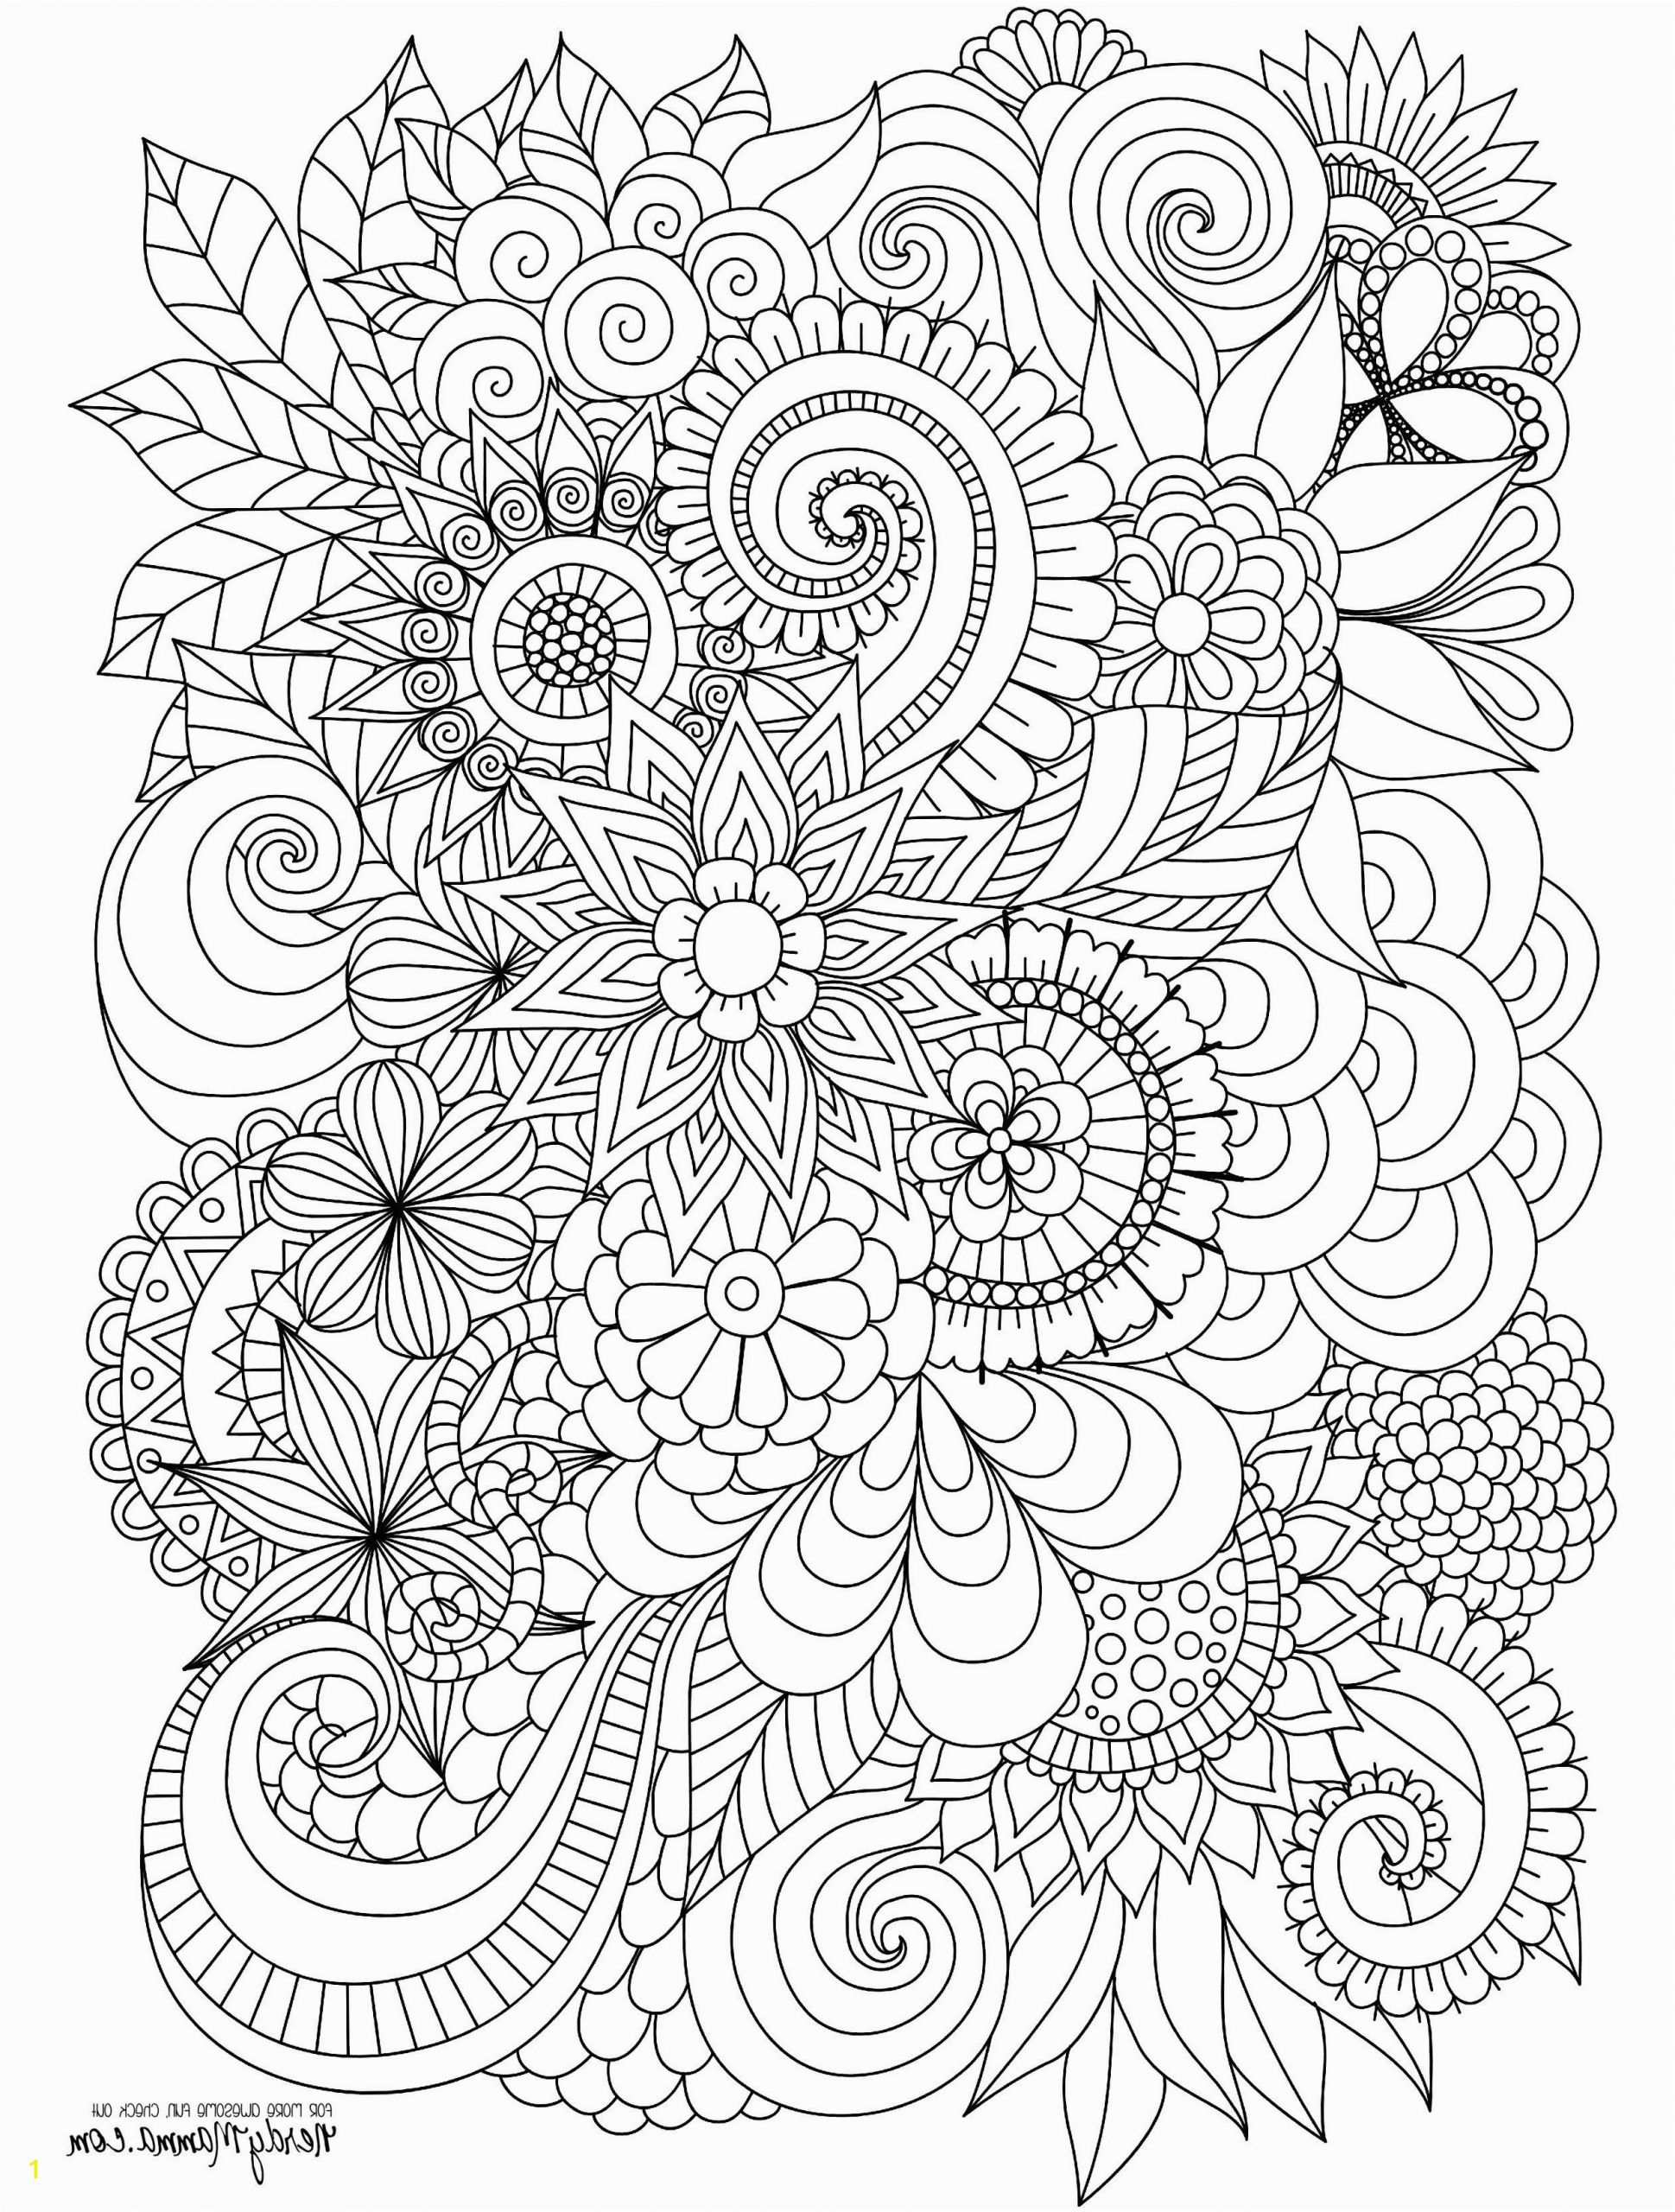 the coloring book album elegant photos flowers abstract coloring pages colouring adult detailed advanced of the coloring book album